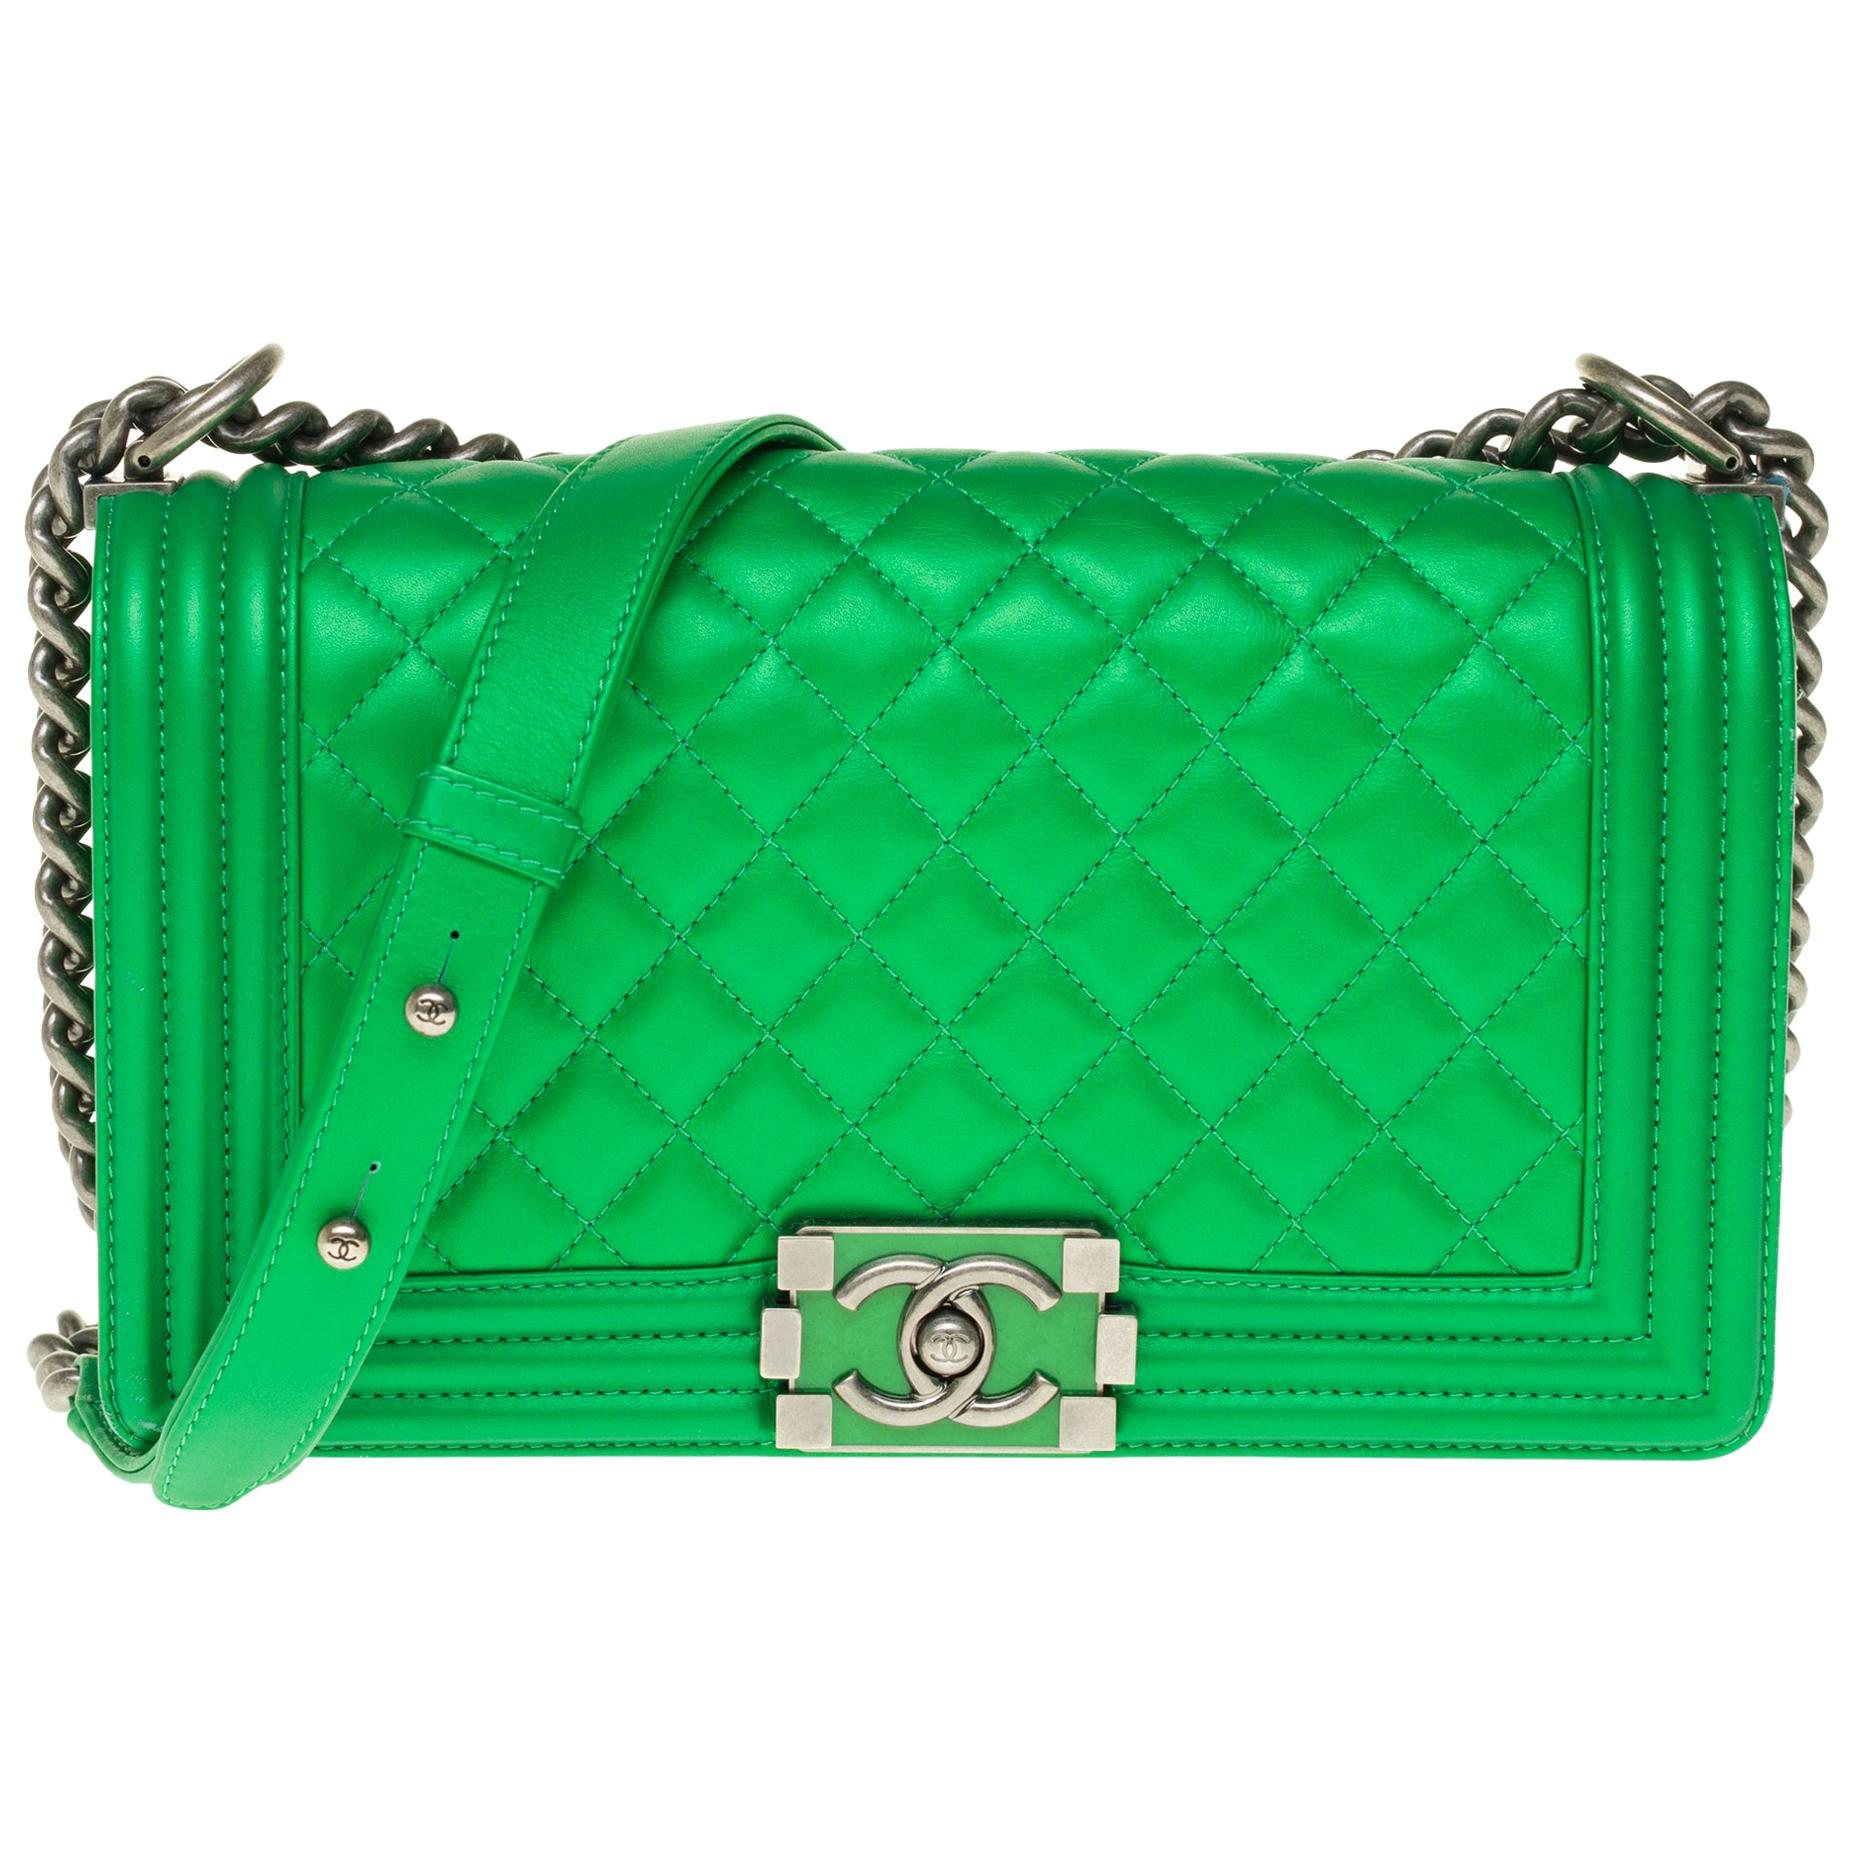 LIMITED EDITION Chanel Boy Old medium handbag in green quilted  leather, SHW !